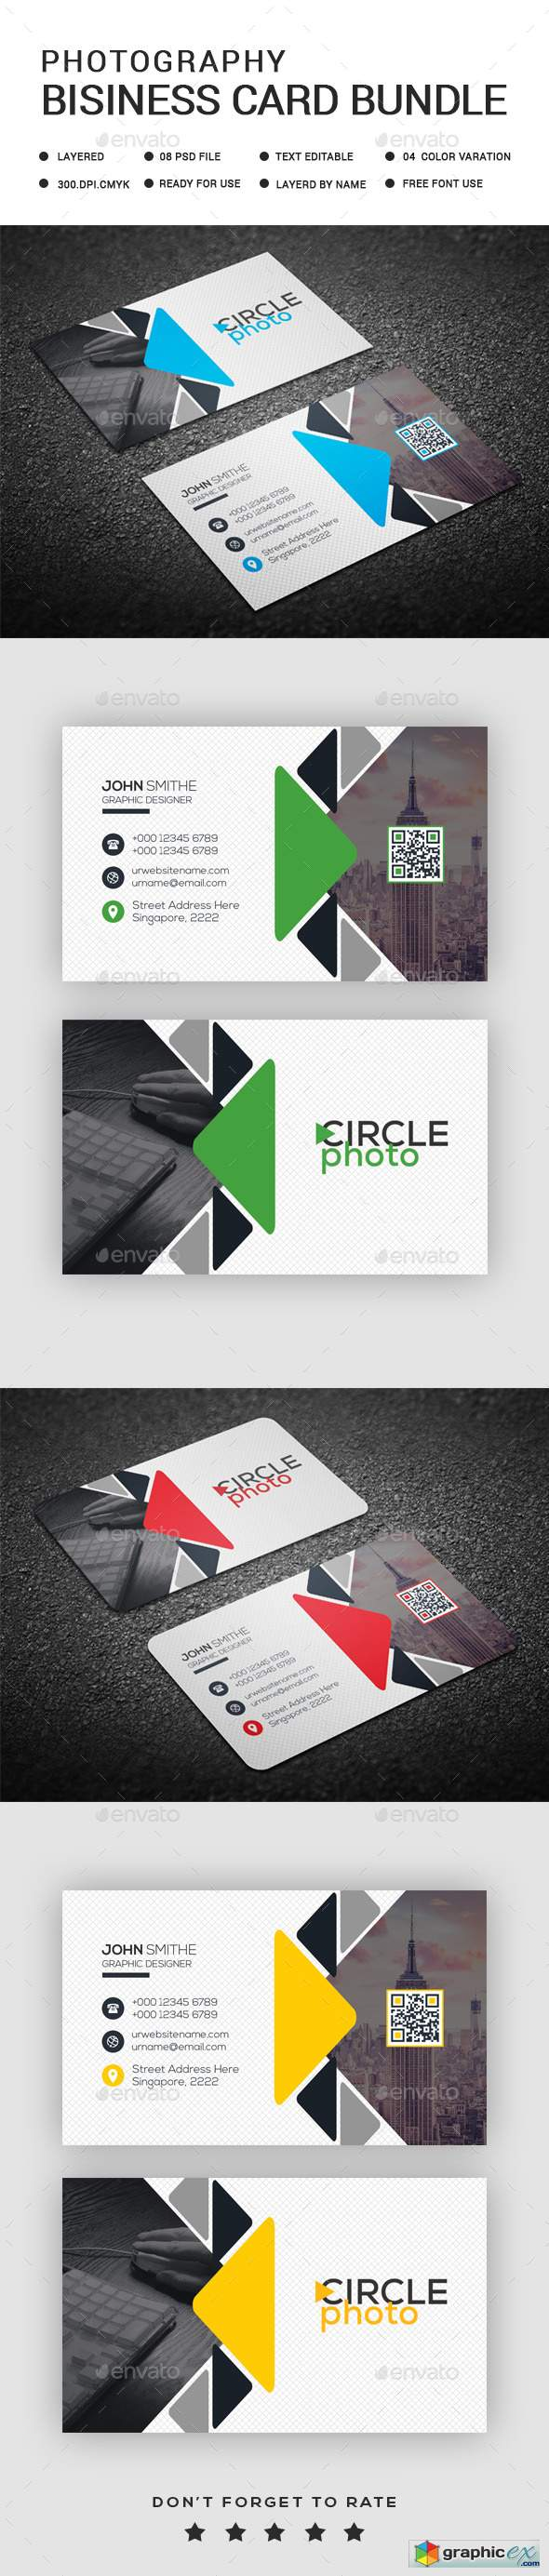 Photography Business Card 22484393